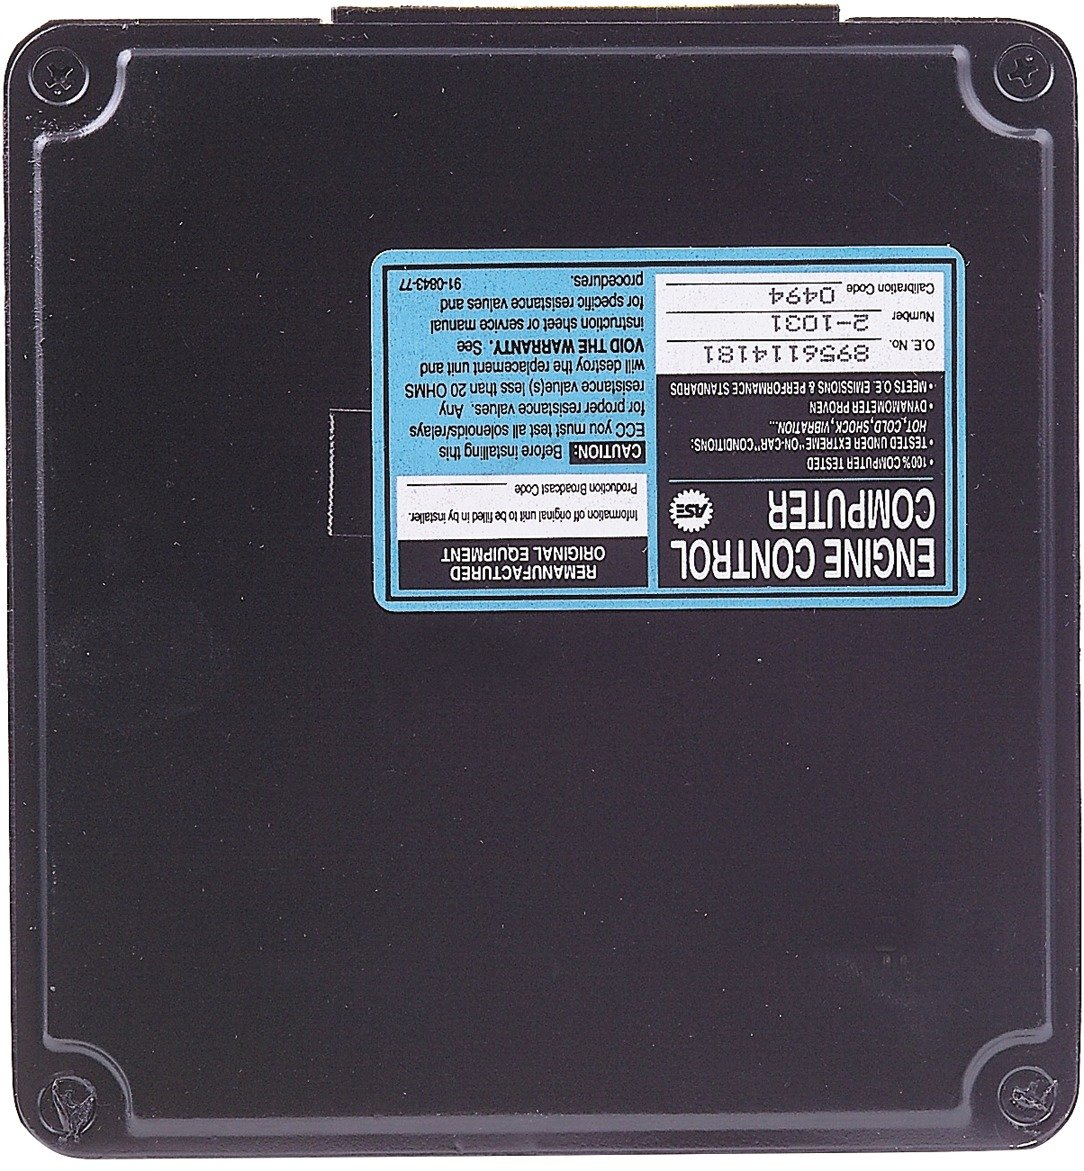 Cardone 72-1031 Remanufactured Import Computer A1 Cardone